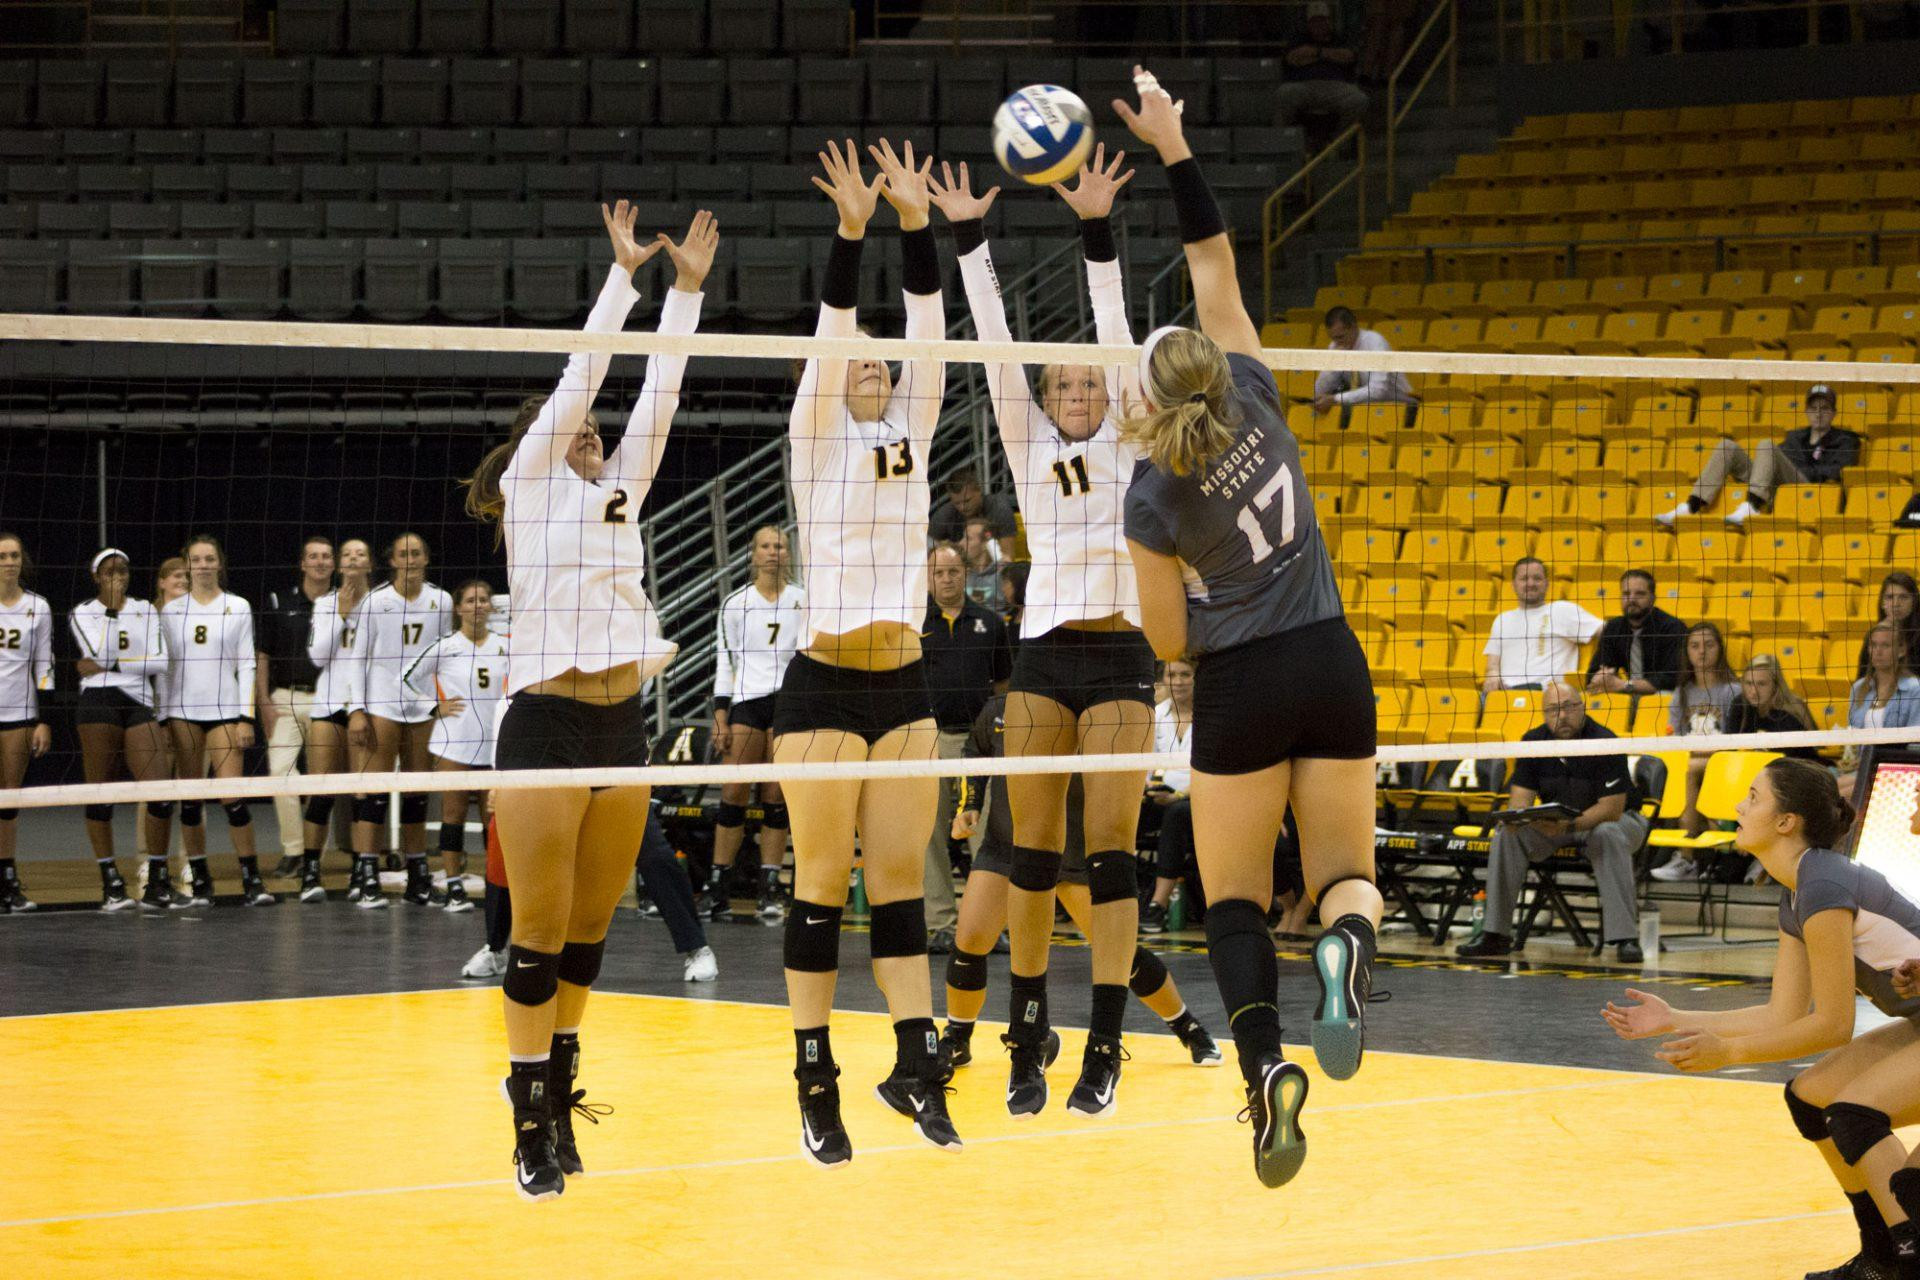 Setter Ashlyn Brown, middle blocker Kara Spicer, and outside hitter Emma Longley go up for the block during the game against Missouri State on Friday, August 25th. Longley returned to action in Sunday's victory over Troy.